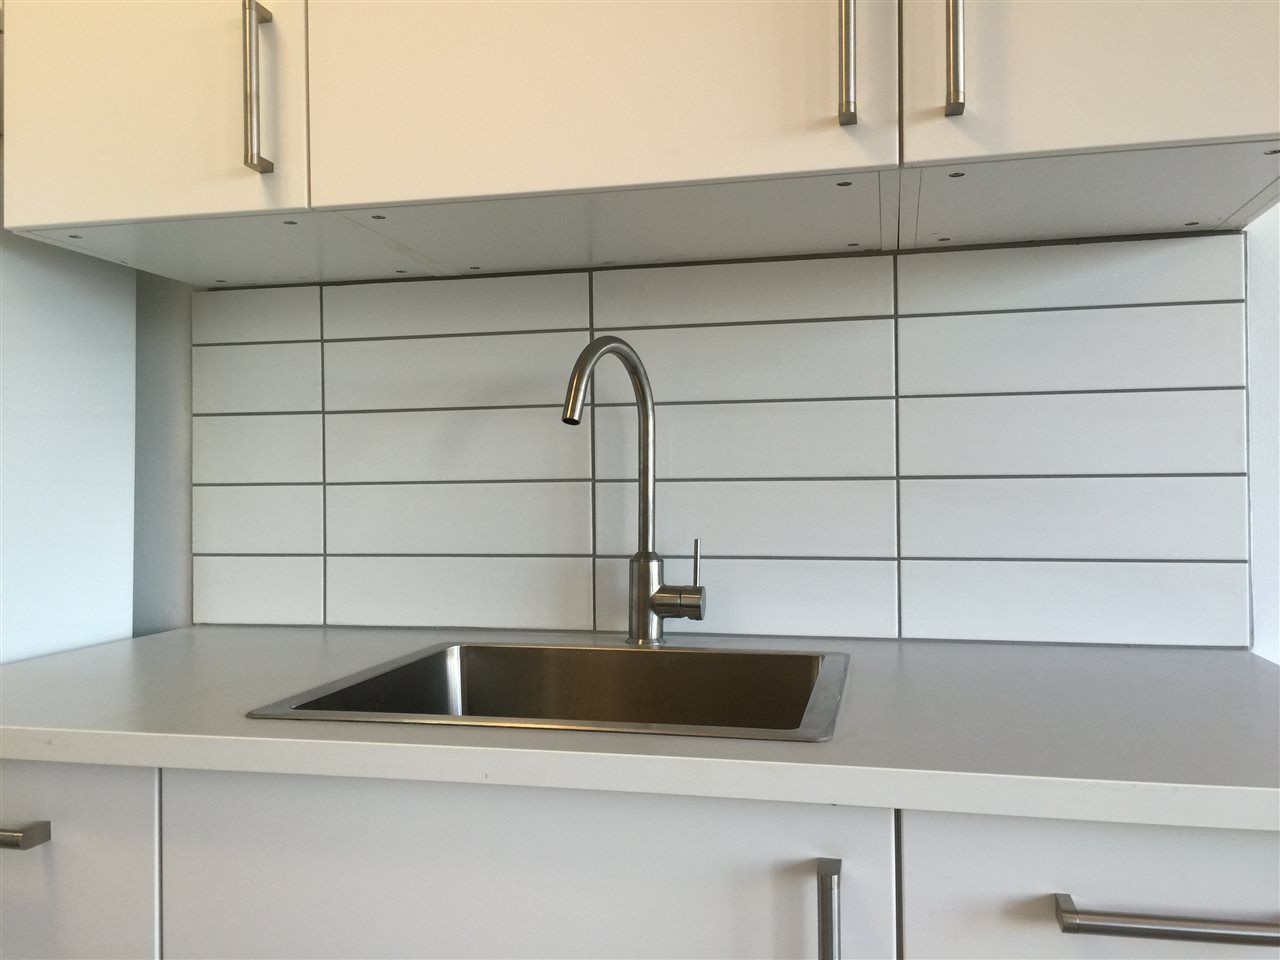 "Photo 3: Photos: 504 6026 TISDALL ST in Vancouver: Oakridge VW Condo for sale in ""Oakridge Towers"" (Vancouver West)  : MLS®# R2021576"